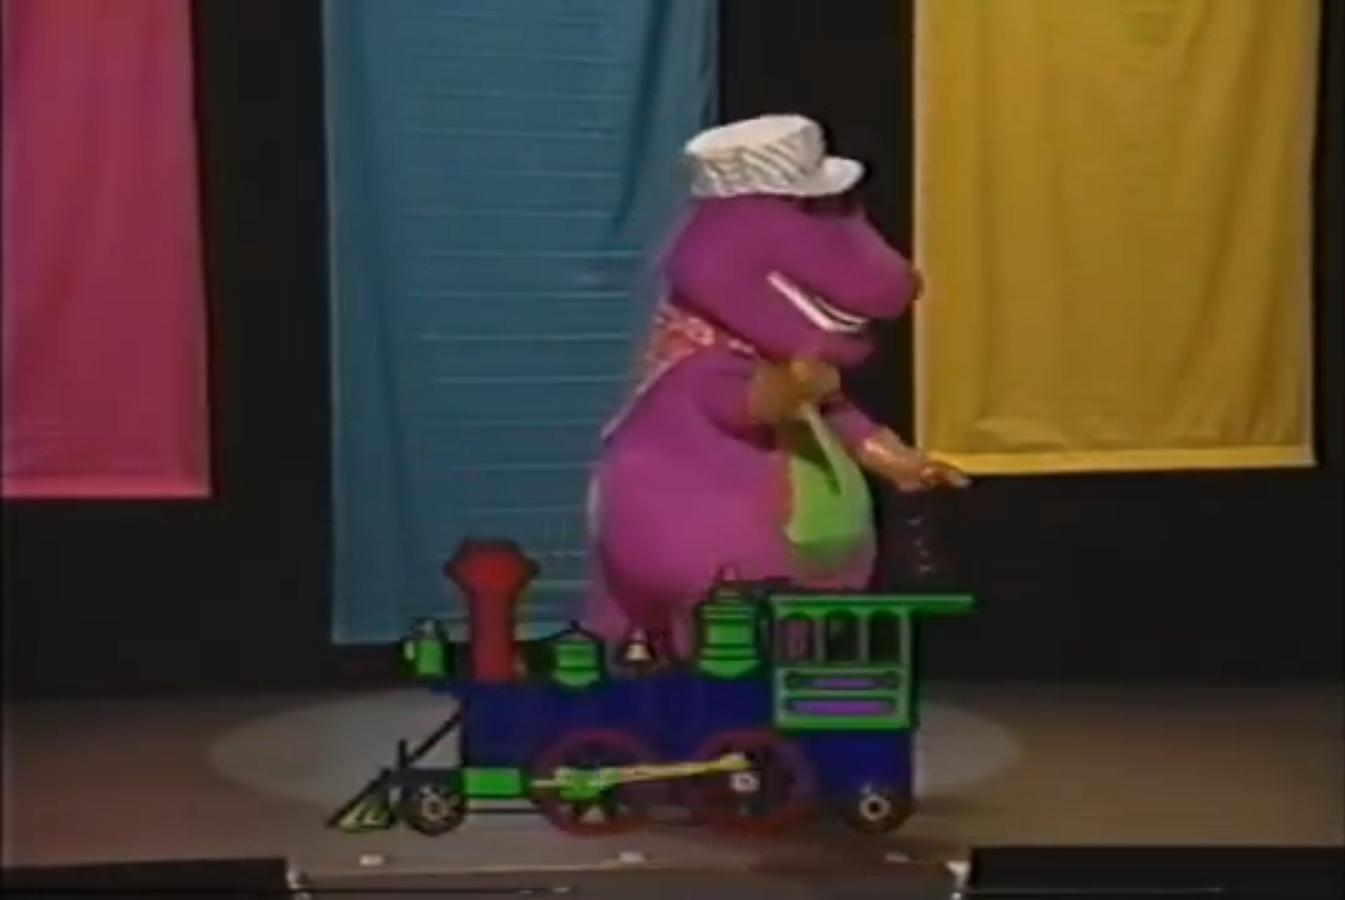 Down By The Station Barney Wiki FANDOM Powered By Wikia - Concert barney wiki